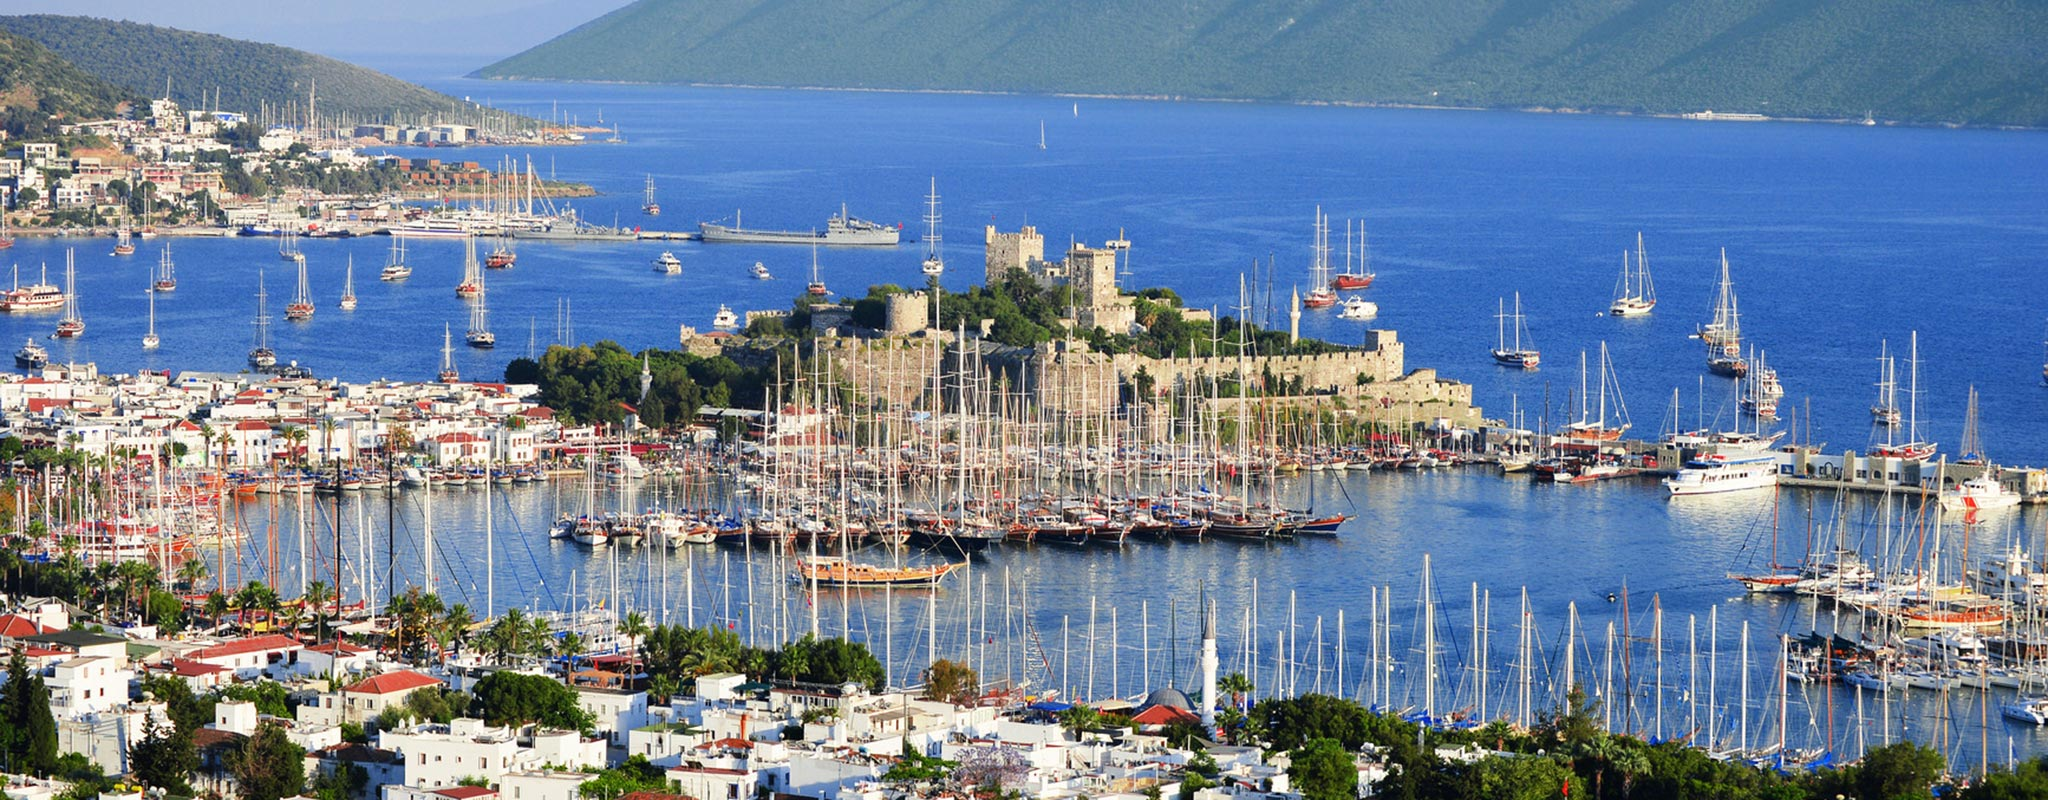 View of Bodrum harbor